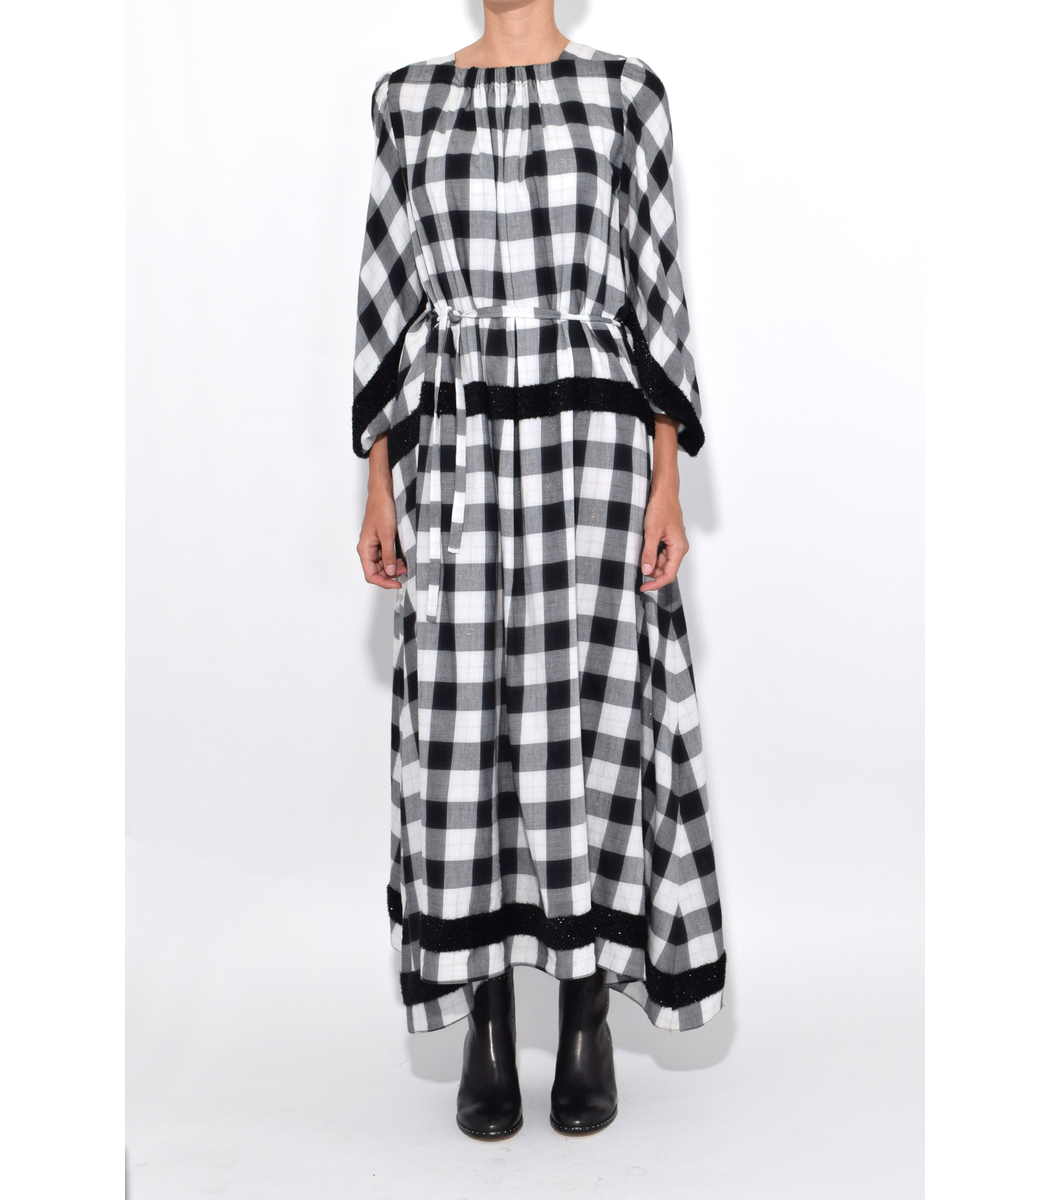 Tibi Boucle Plaid Maxi Dress - Black/Copper Dress